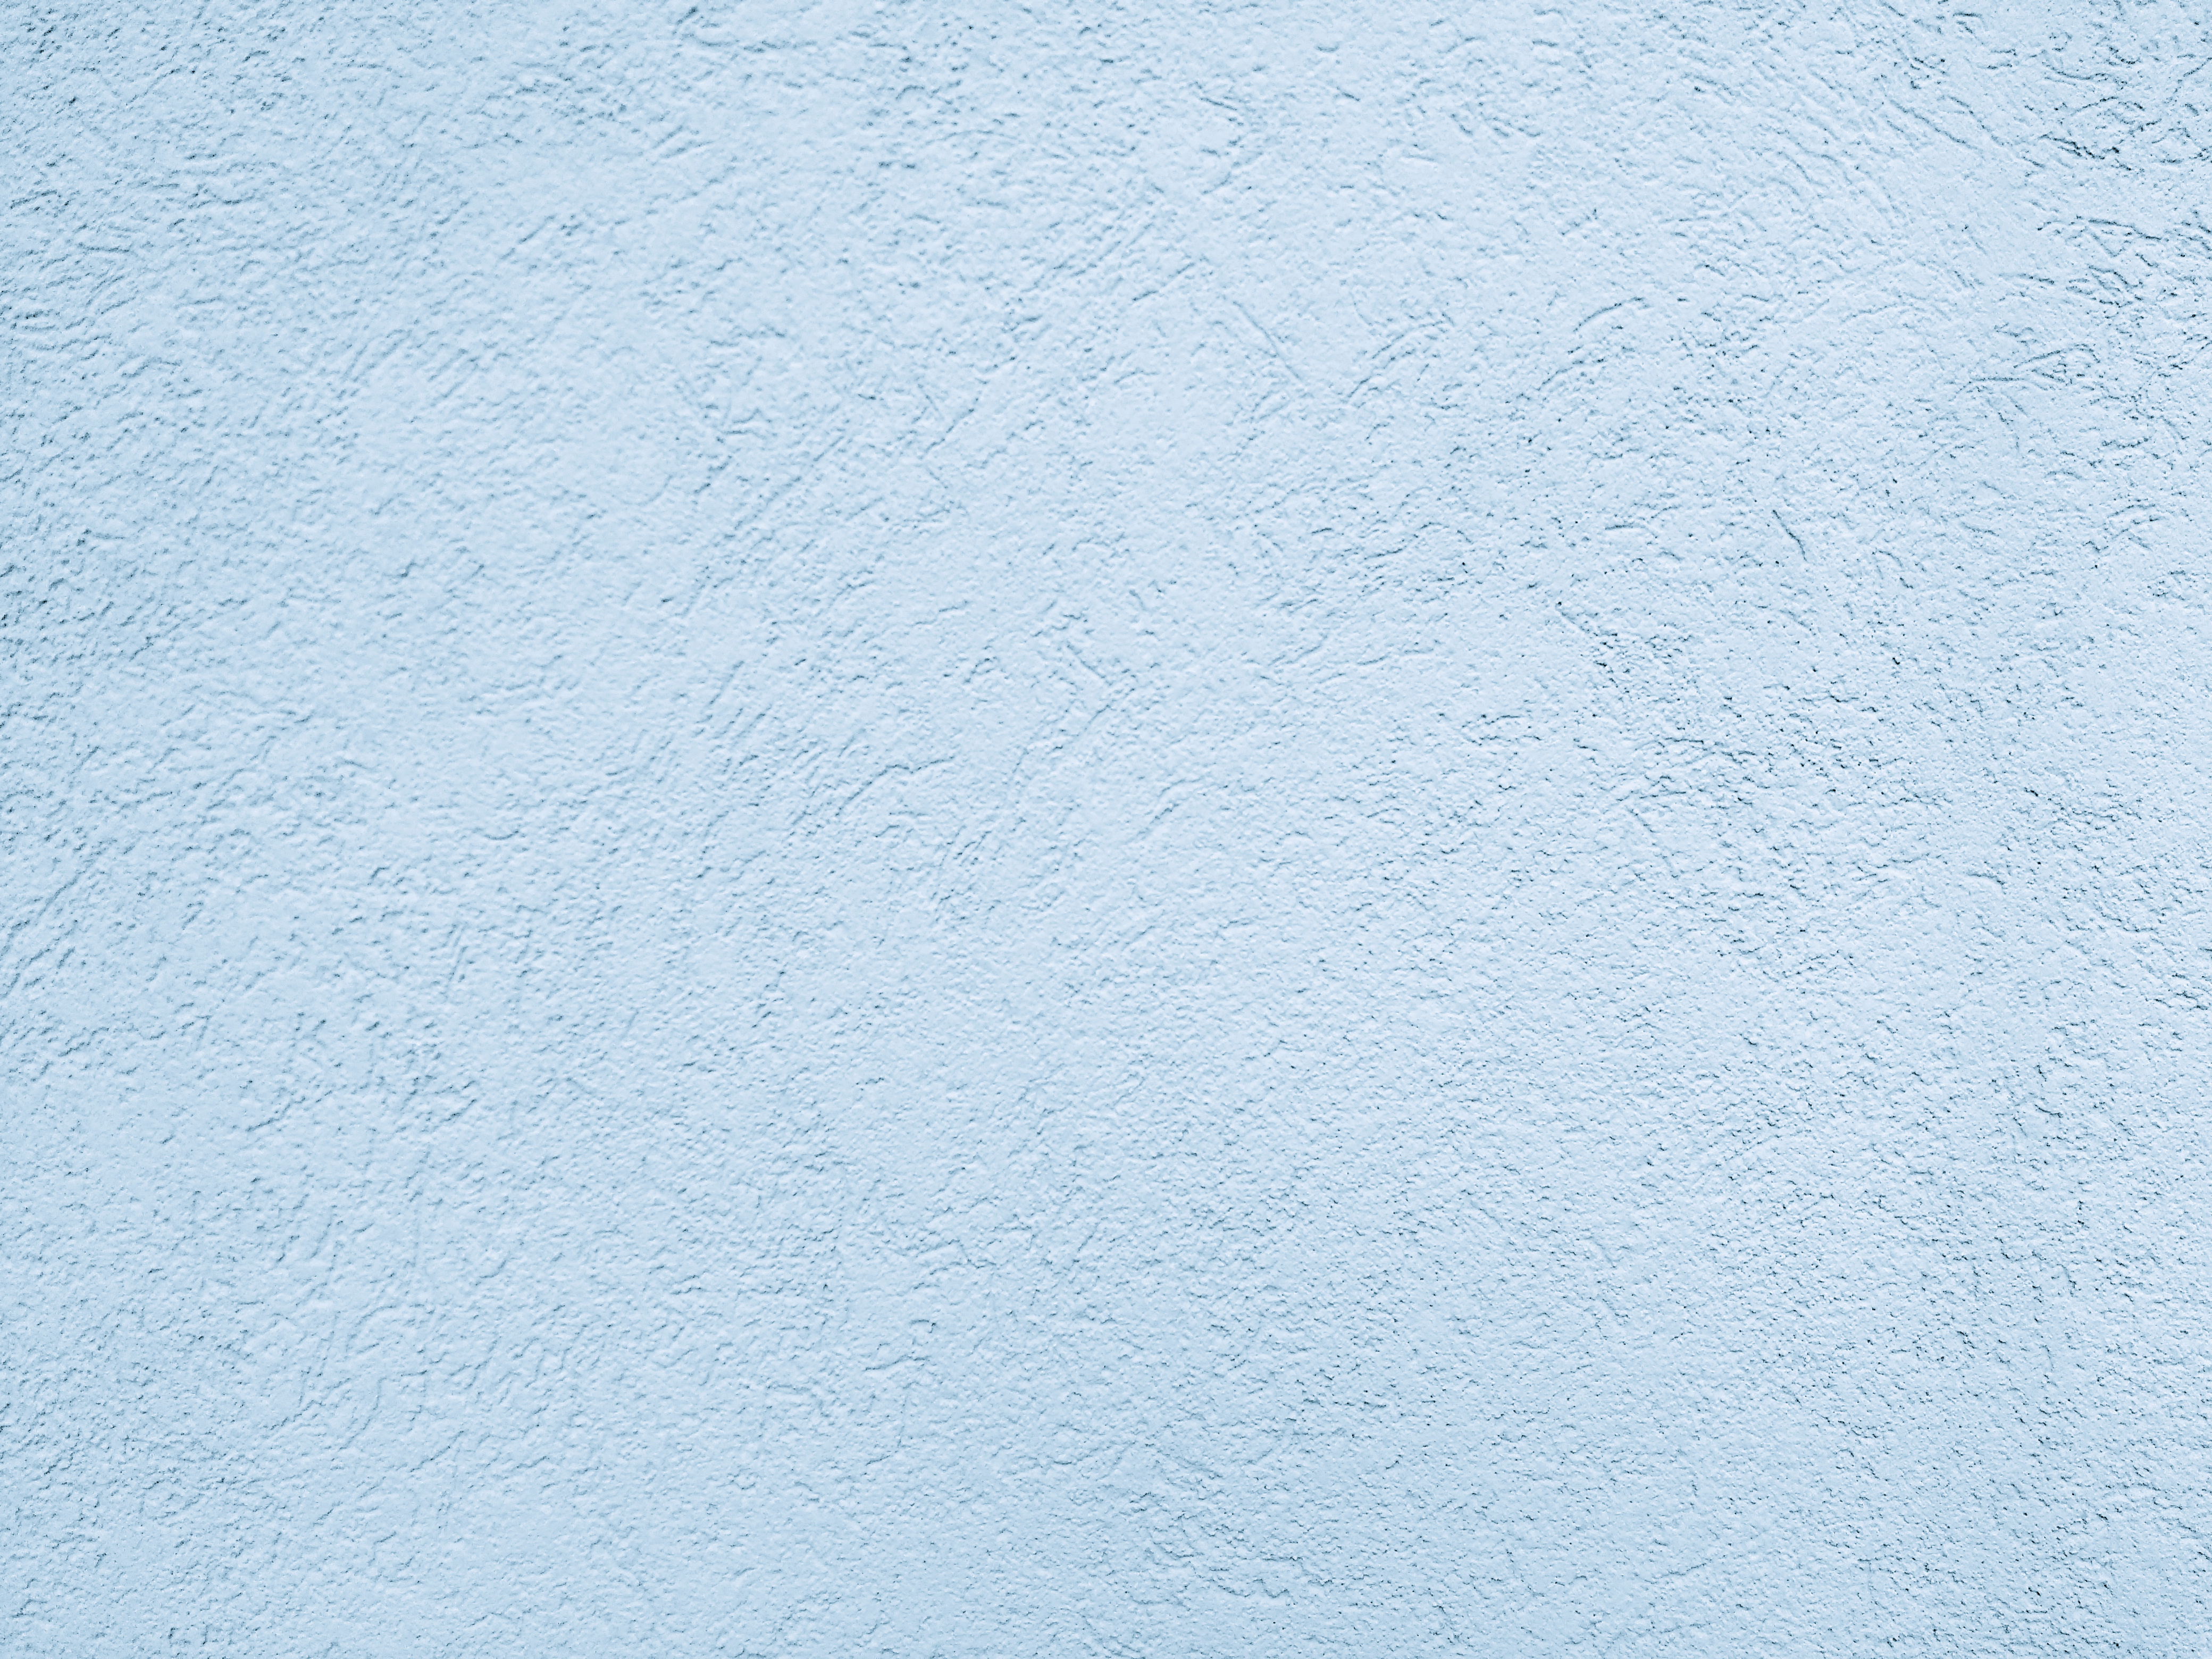 Baby Blue Textured Wall Close Up Picture Free Photograph